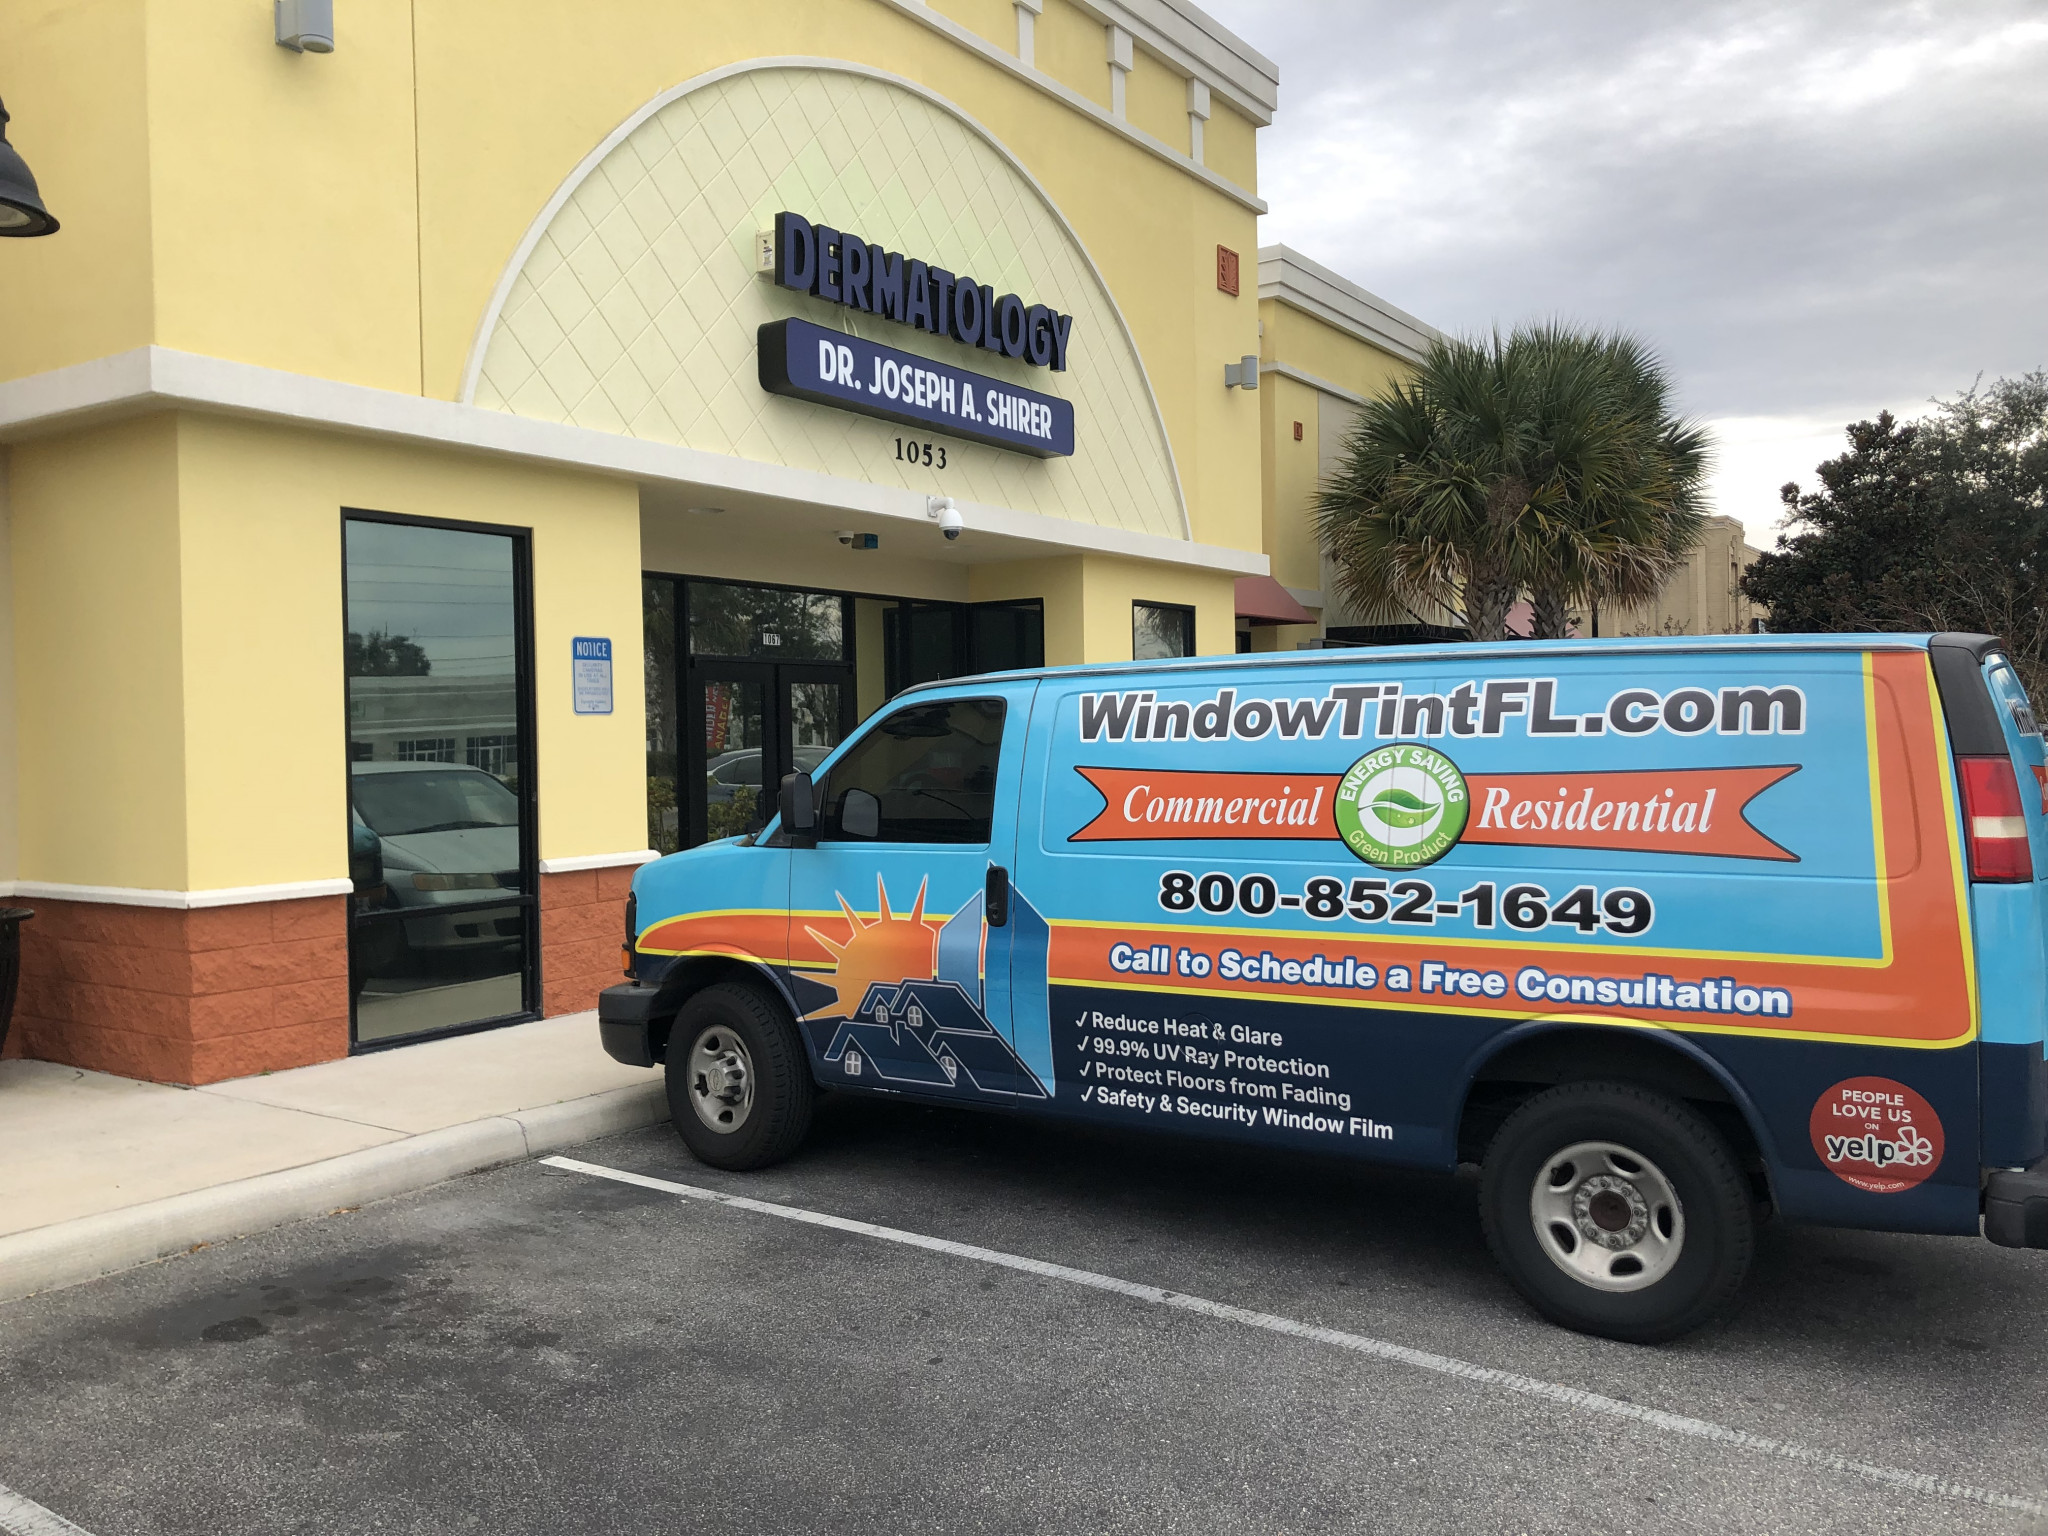 Mirror Tint for Privacy in Orlando